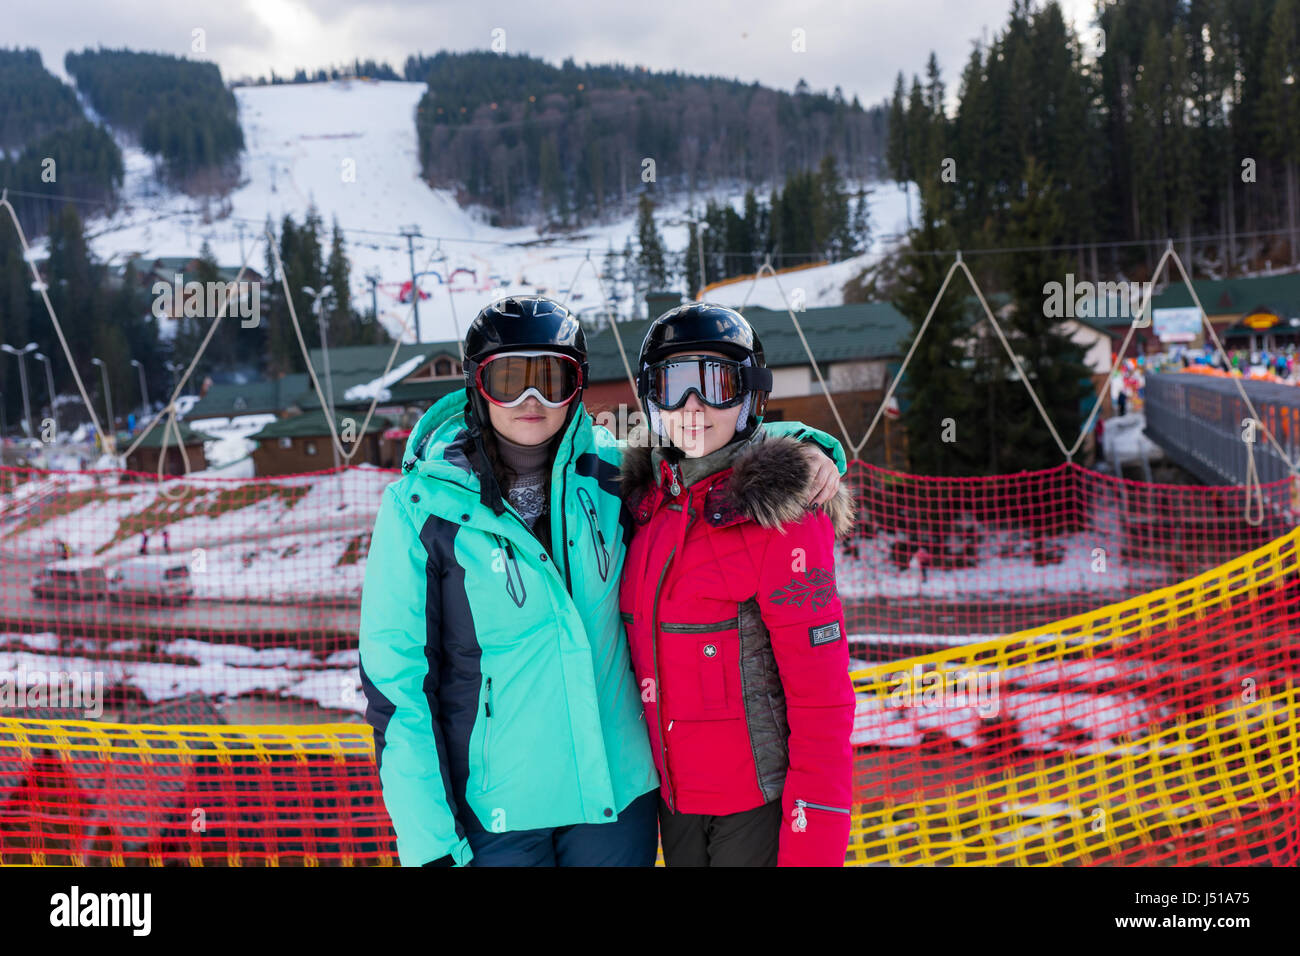 Smiling women in ski suits, with helmets and ski goggles standing in a ski-resort in winter period - Stock Image